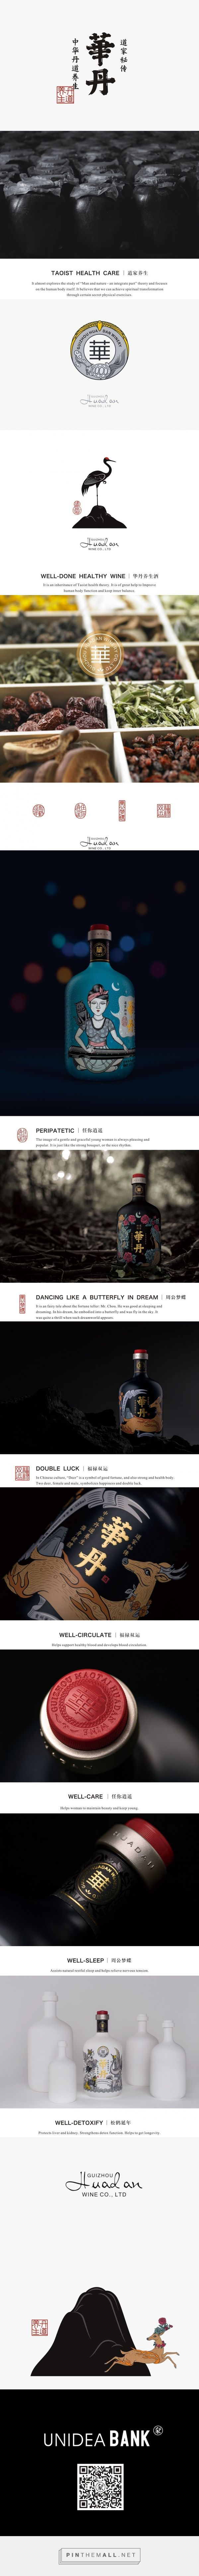 Well-done Chinese Wine packaging design by Unidea Bank (China) - http://www.packagingoftheworld.com/2016/04/well-done-chinese-wine.html